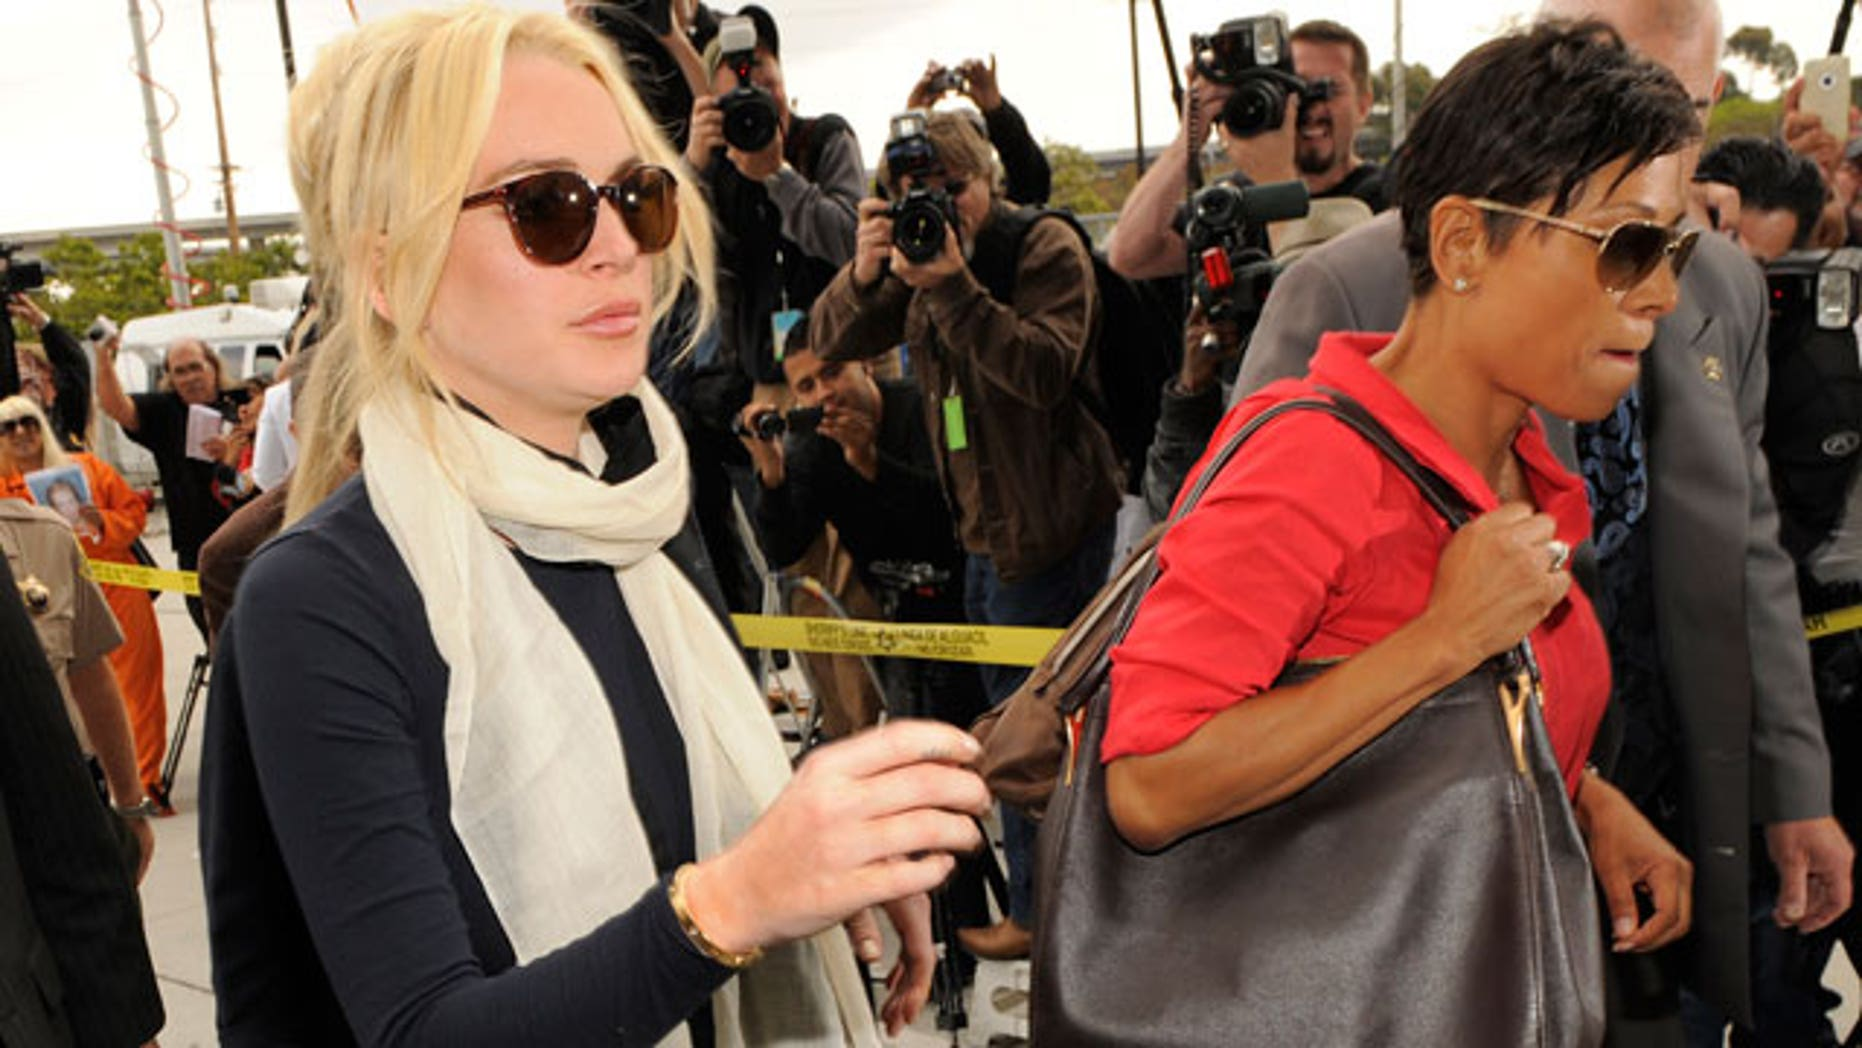 April 22: Lindsay Lohan and her lawyer Shawn Chapman Holley arrive for a hearing on Lohan's jewelry theft case in Los Angeles(AP).